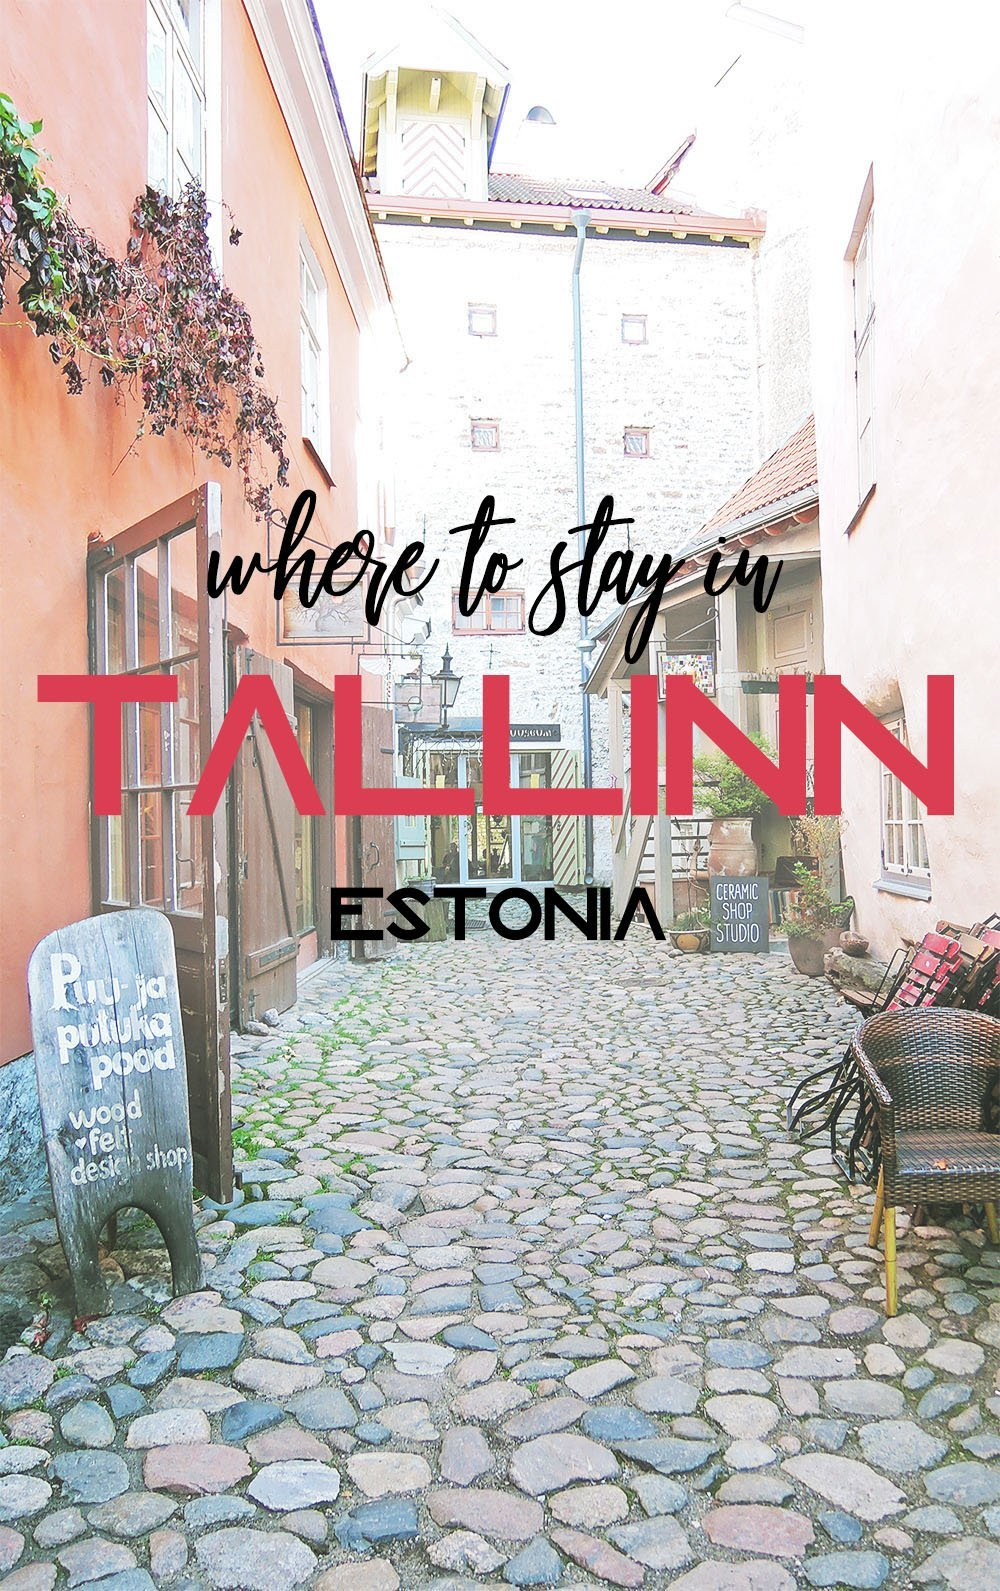 Looking for a fresh, new city to explore? Here's where you should go: Tallinn. This is where you can enjoy a breathtaking medieval town and an indie creative culture – plus everything in between! This classic port city has further opened its doors to become Europe's prime startup scene, filling the streets with new blood and imagination. It's for anyone looking for a dose of creative inspiration and heaps of adventure, really. Sounds like you? Here's how to explore and where to stay in Tallinn.